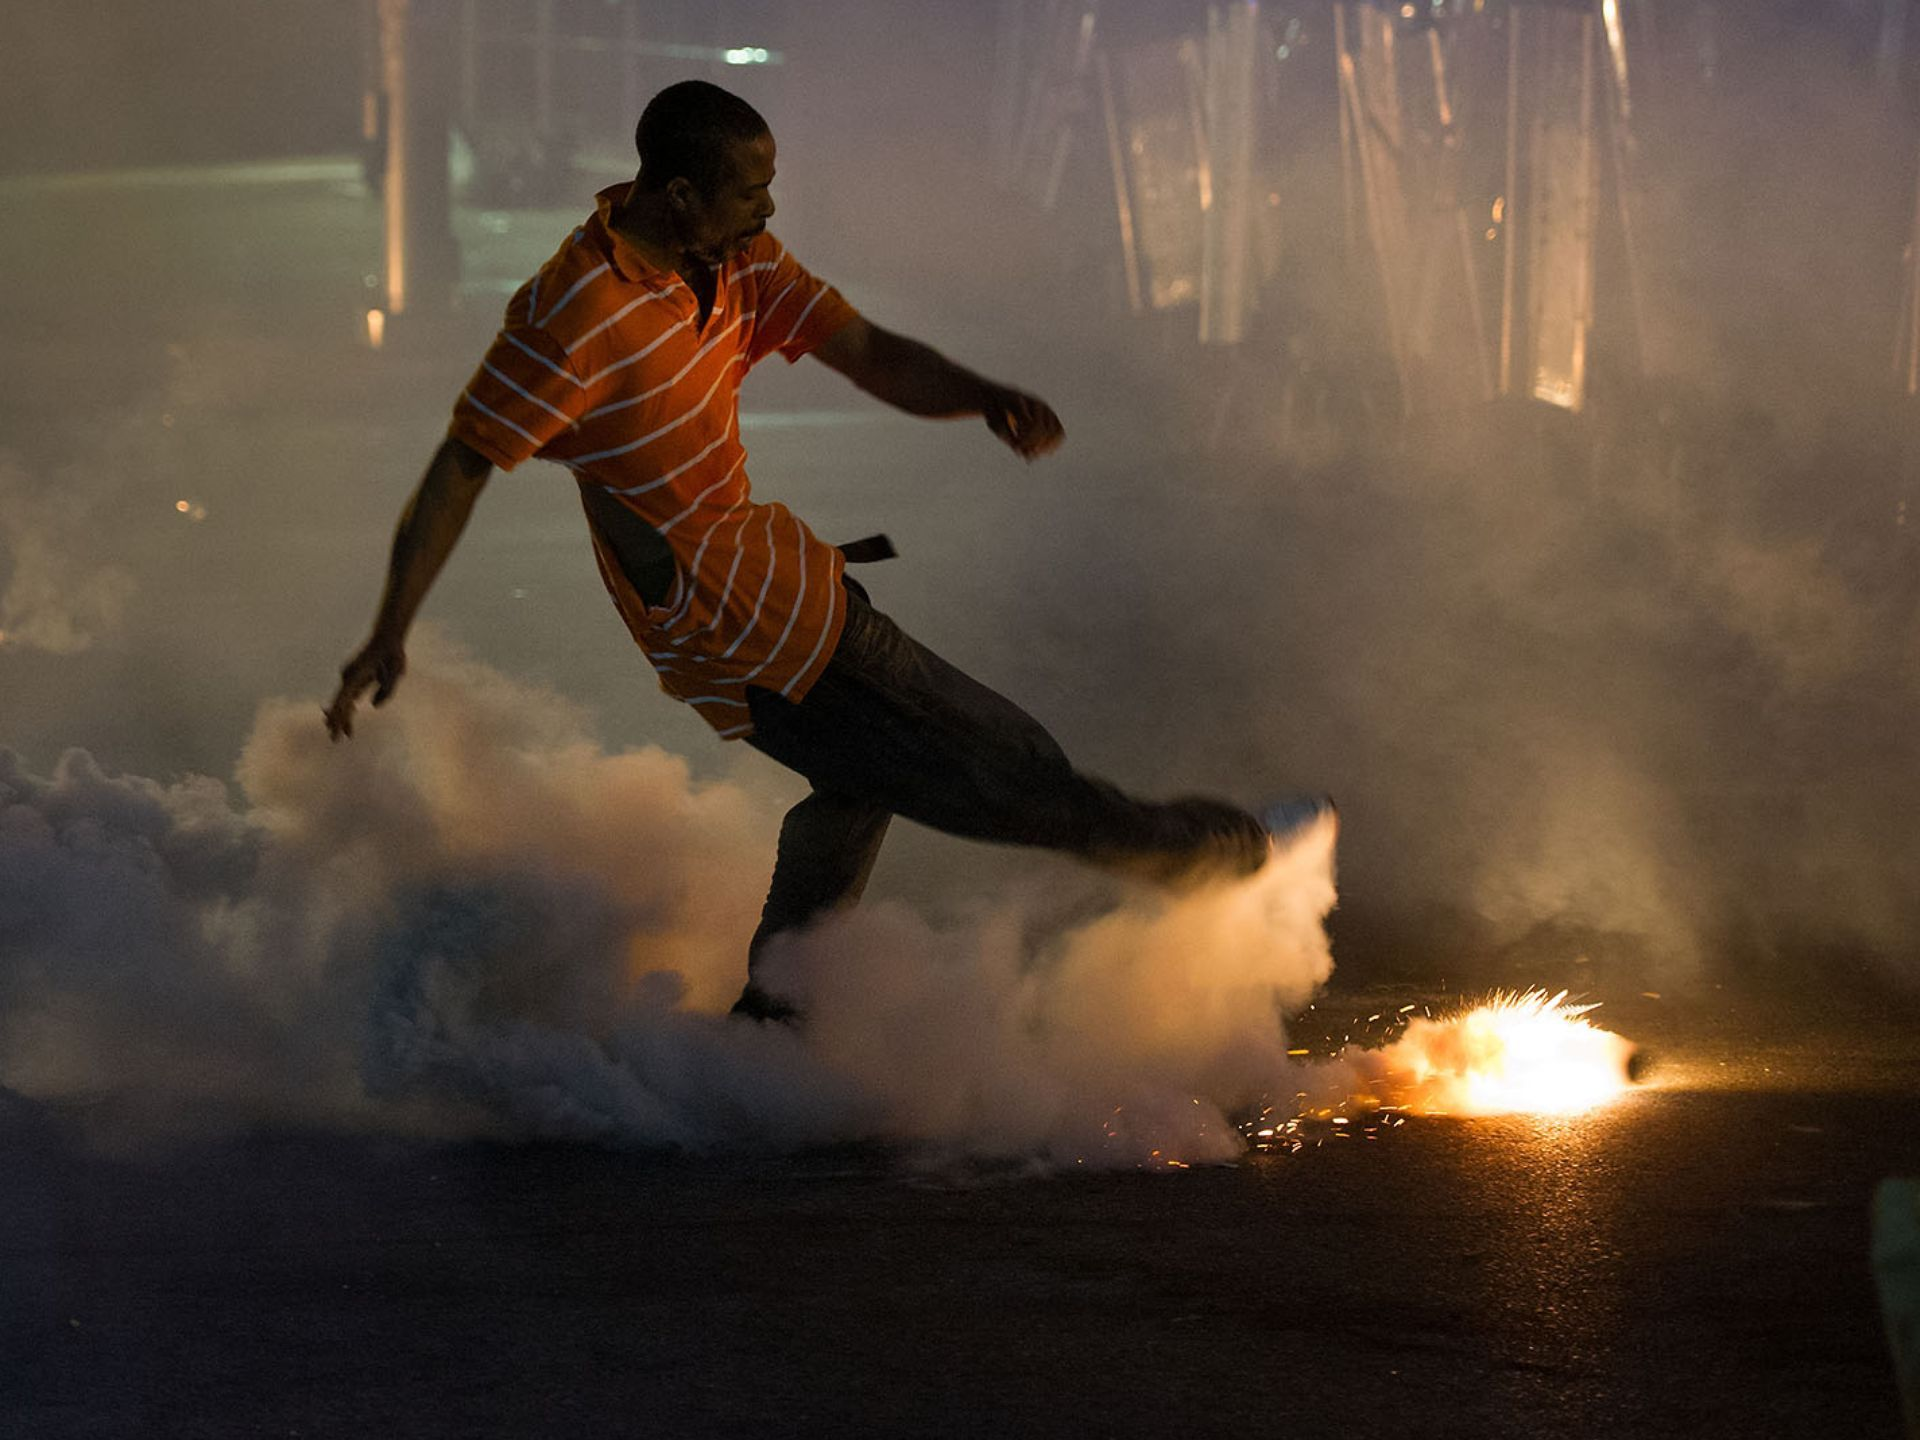 A protester kicks away a tear gas canister as police advance on demonstrators after a 10 p.m. curfew began on April 28 on North Avenue in Baltimore. Police attempted to restore order after violence rocked the city following the funeral for Freddie Gray, who died while in police custody.  Jack Gruber, USA TODAY